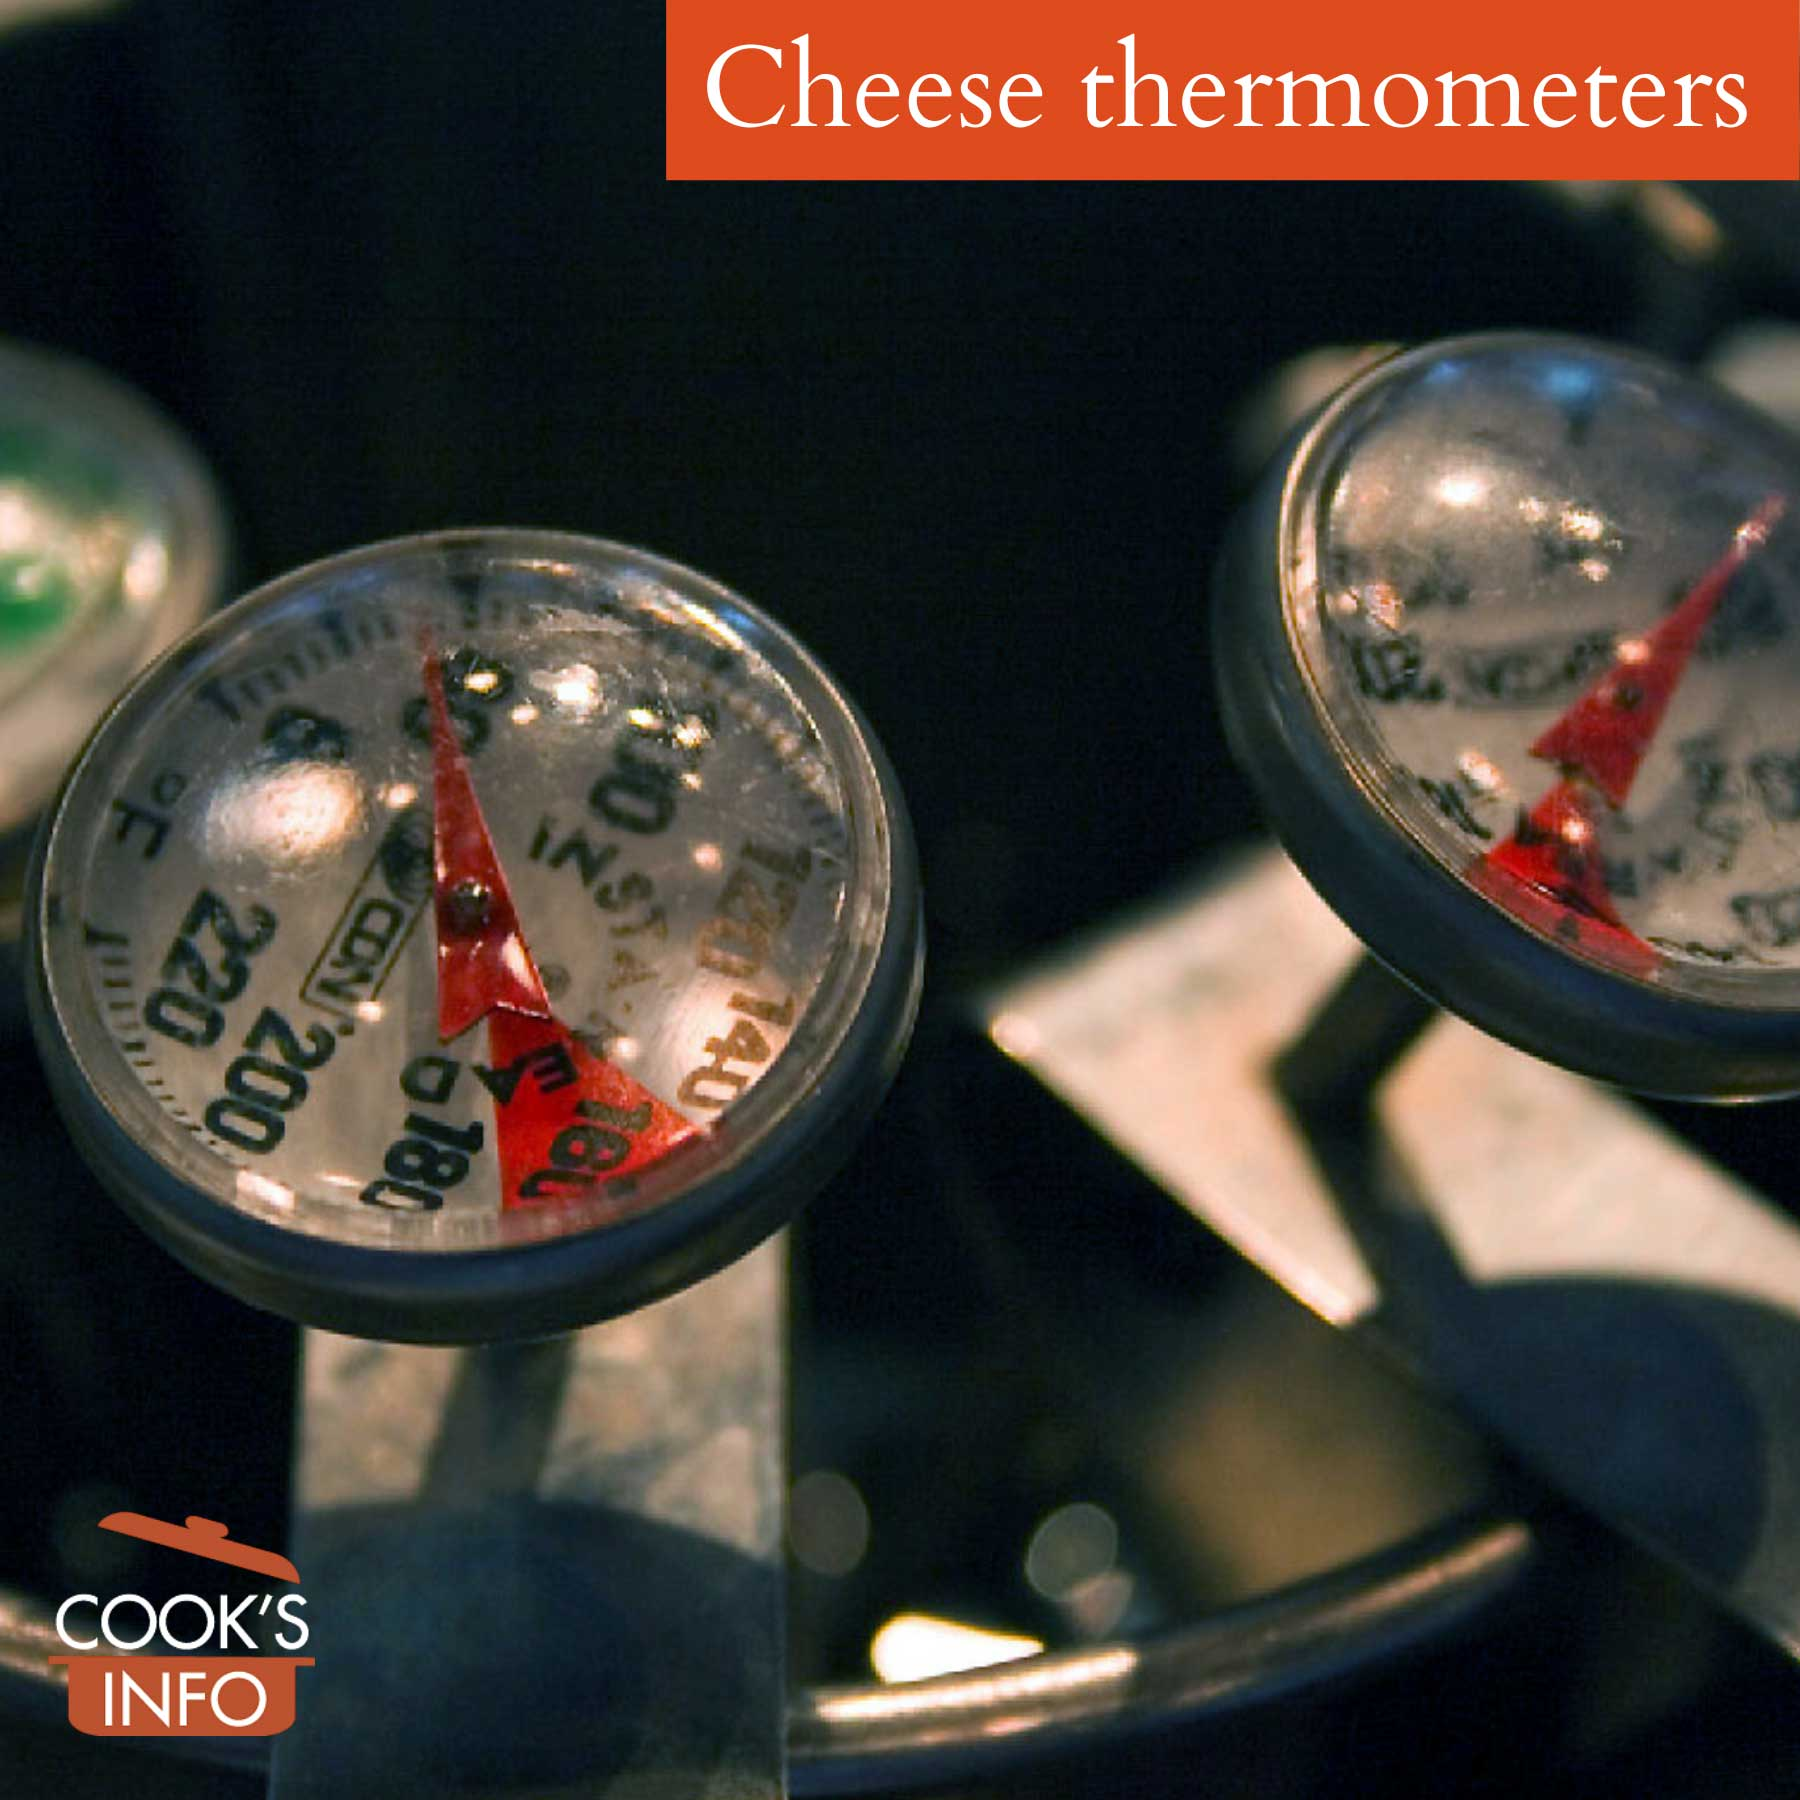 Cheese thermometers with clips